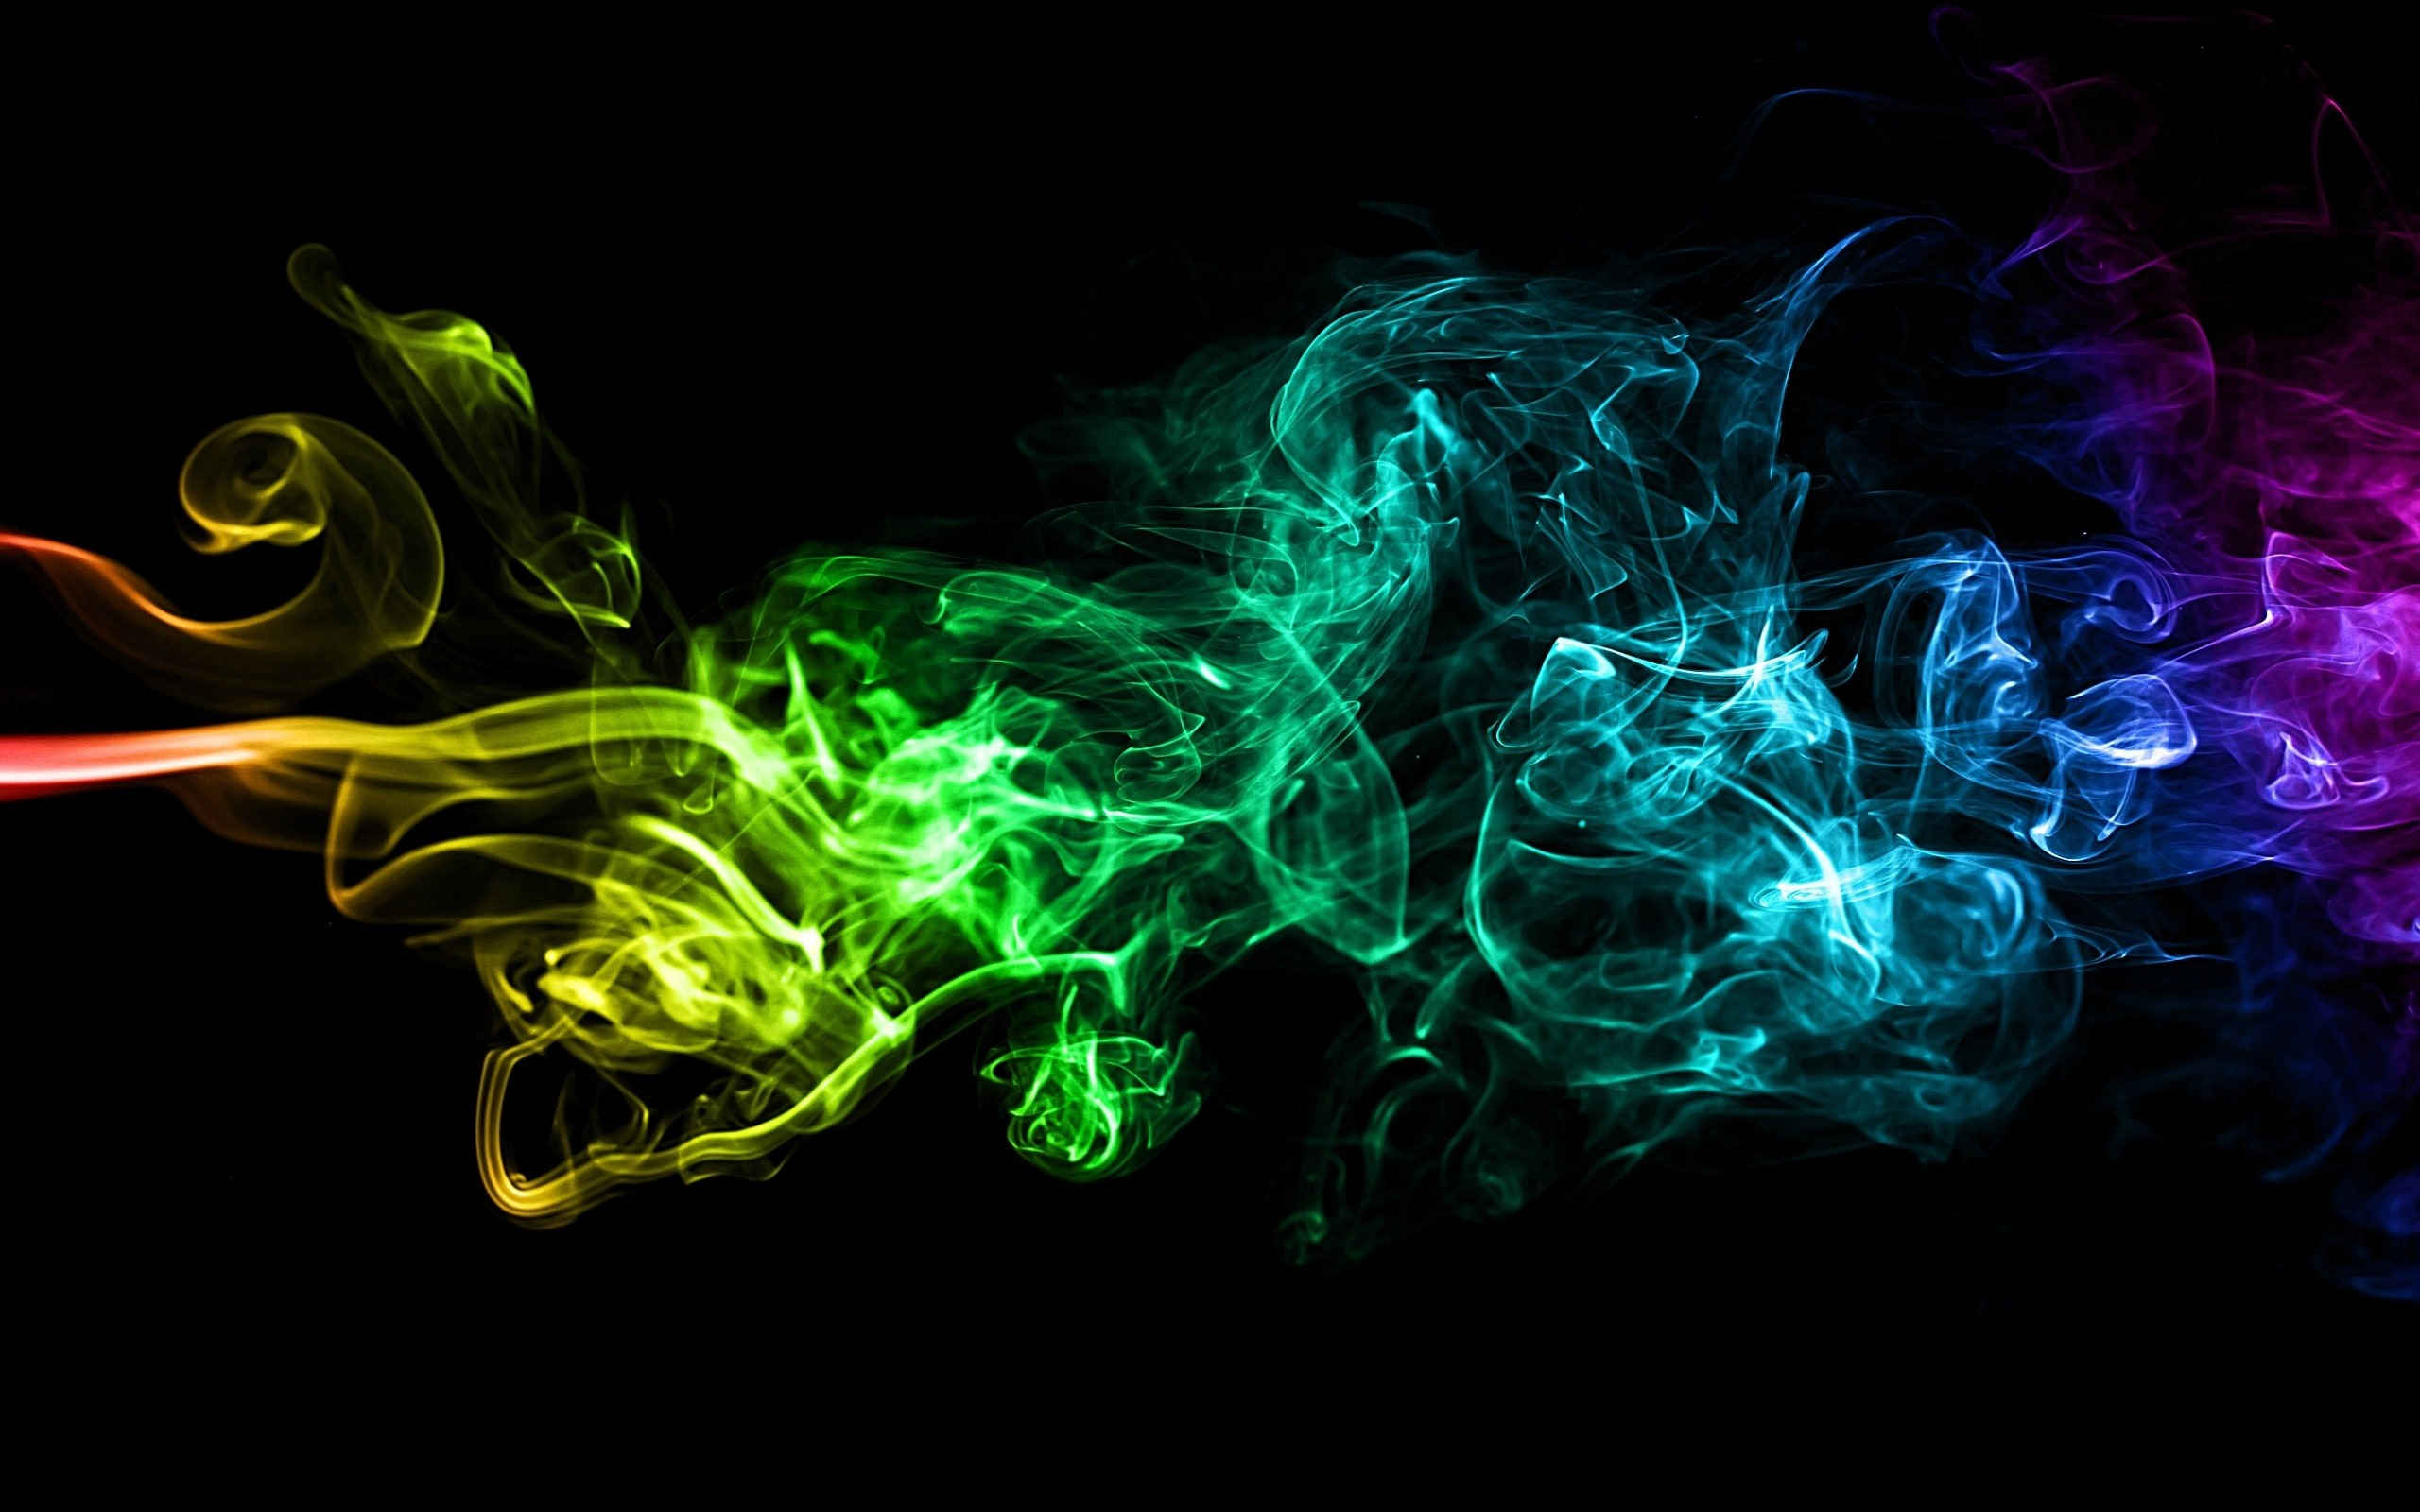 2560x1600 nice Abstract Colorful Smoke Art Background Image